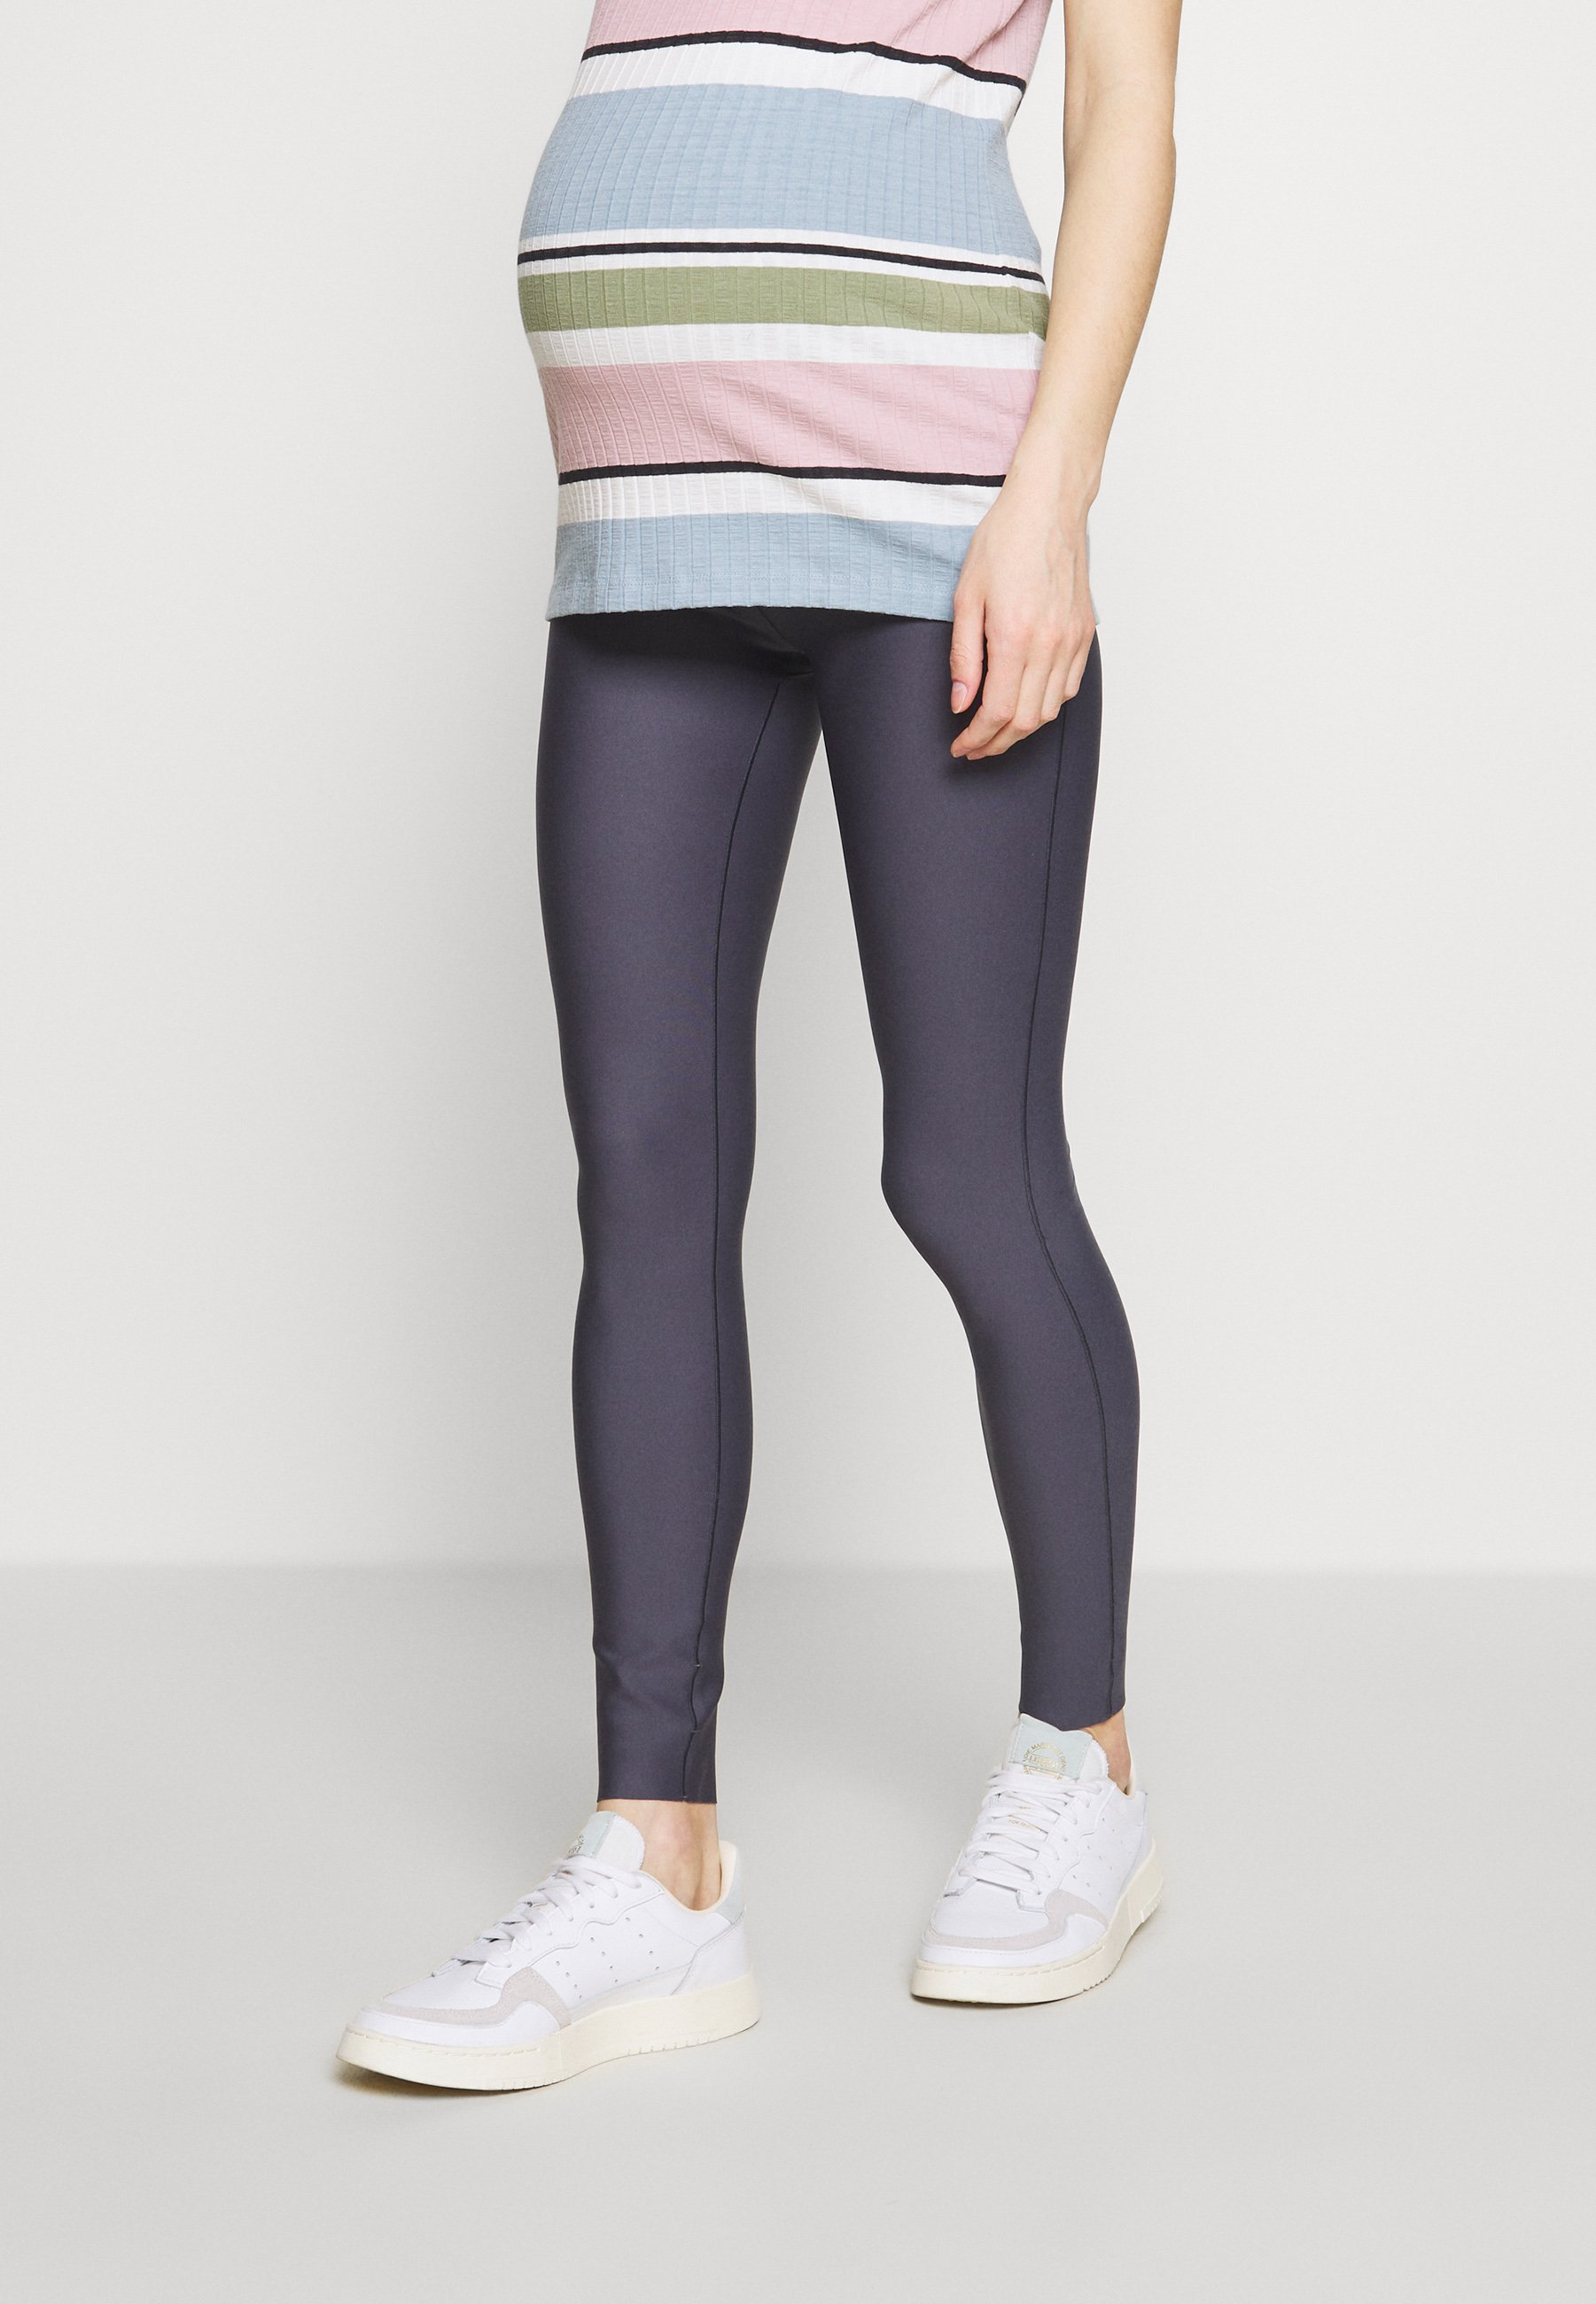 High-Quality Cheap Women's Clothing GLOWE The Glowe Maternity SUPPORT LEGGING Leggings Trousers solid grey U0P4ckeRg